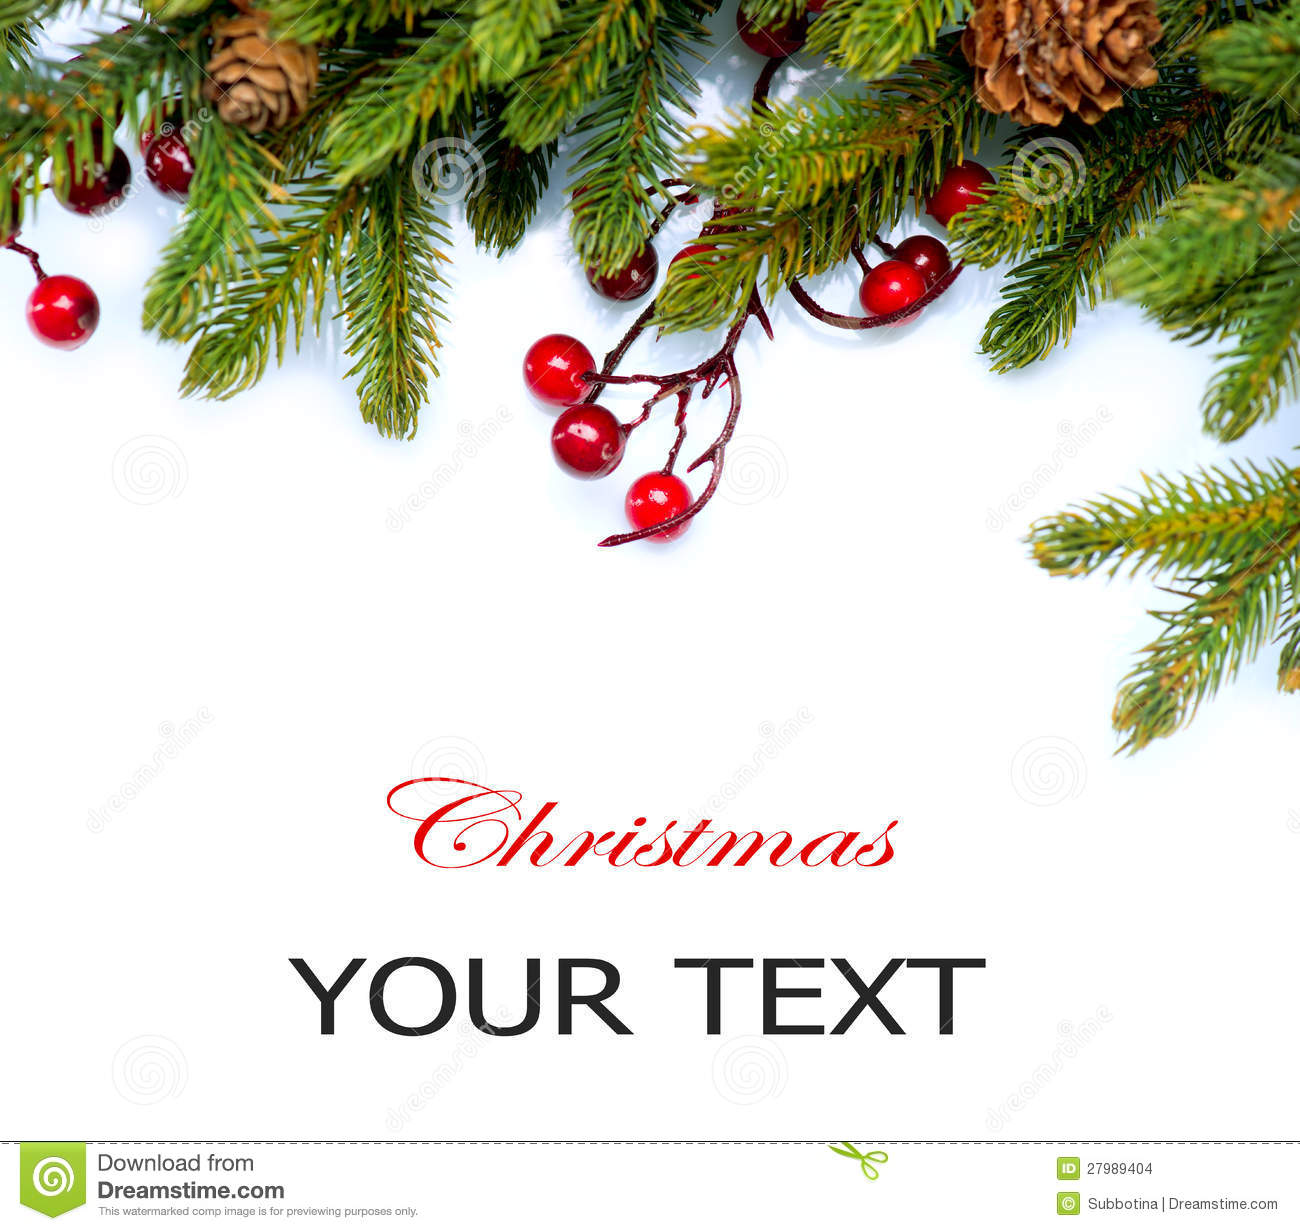 Christmas Tree Border Design Stock Images - Image: 27989404